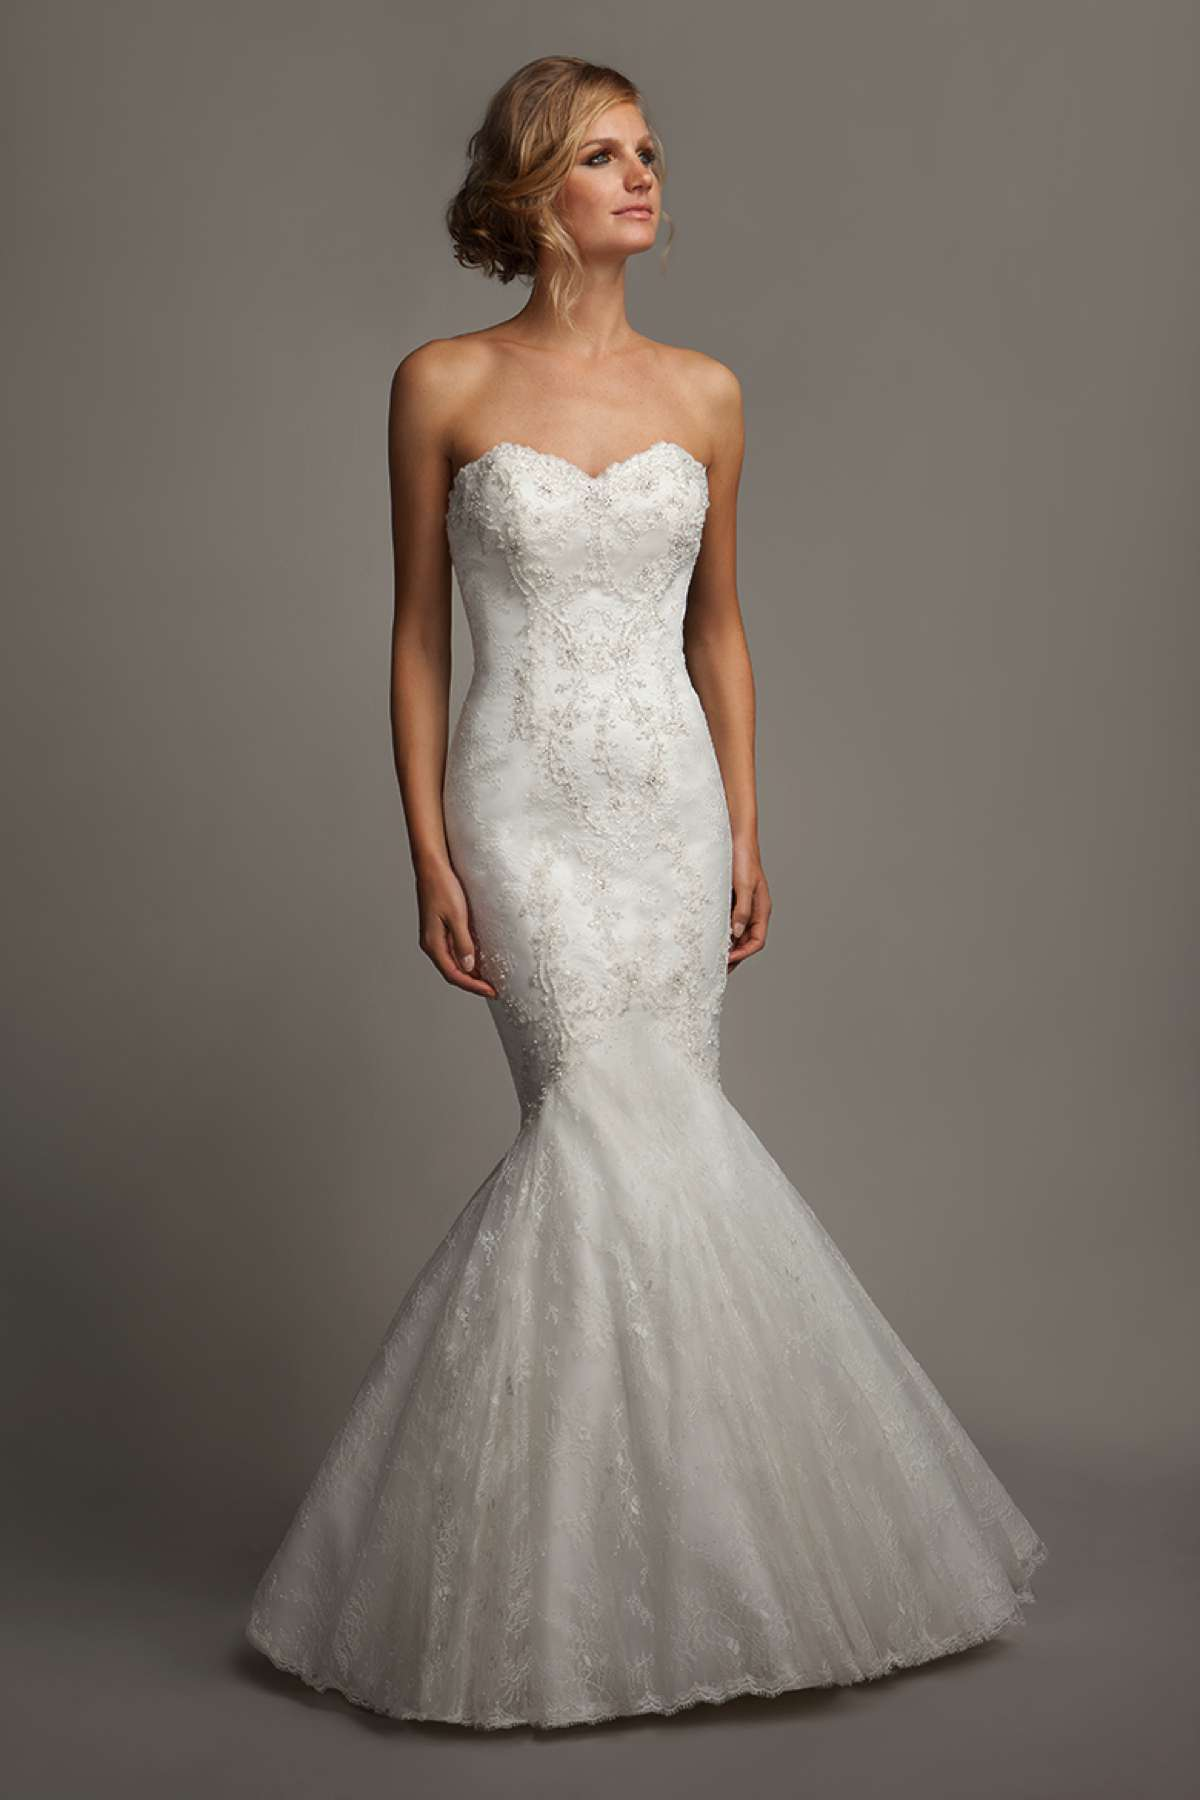 Find a wedding dress to suit your shape love our wedding for How to find a wedding dress